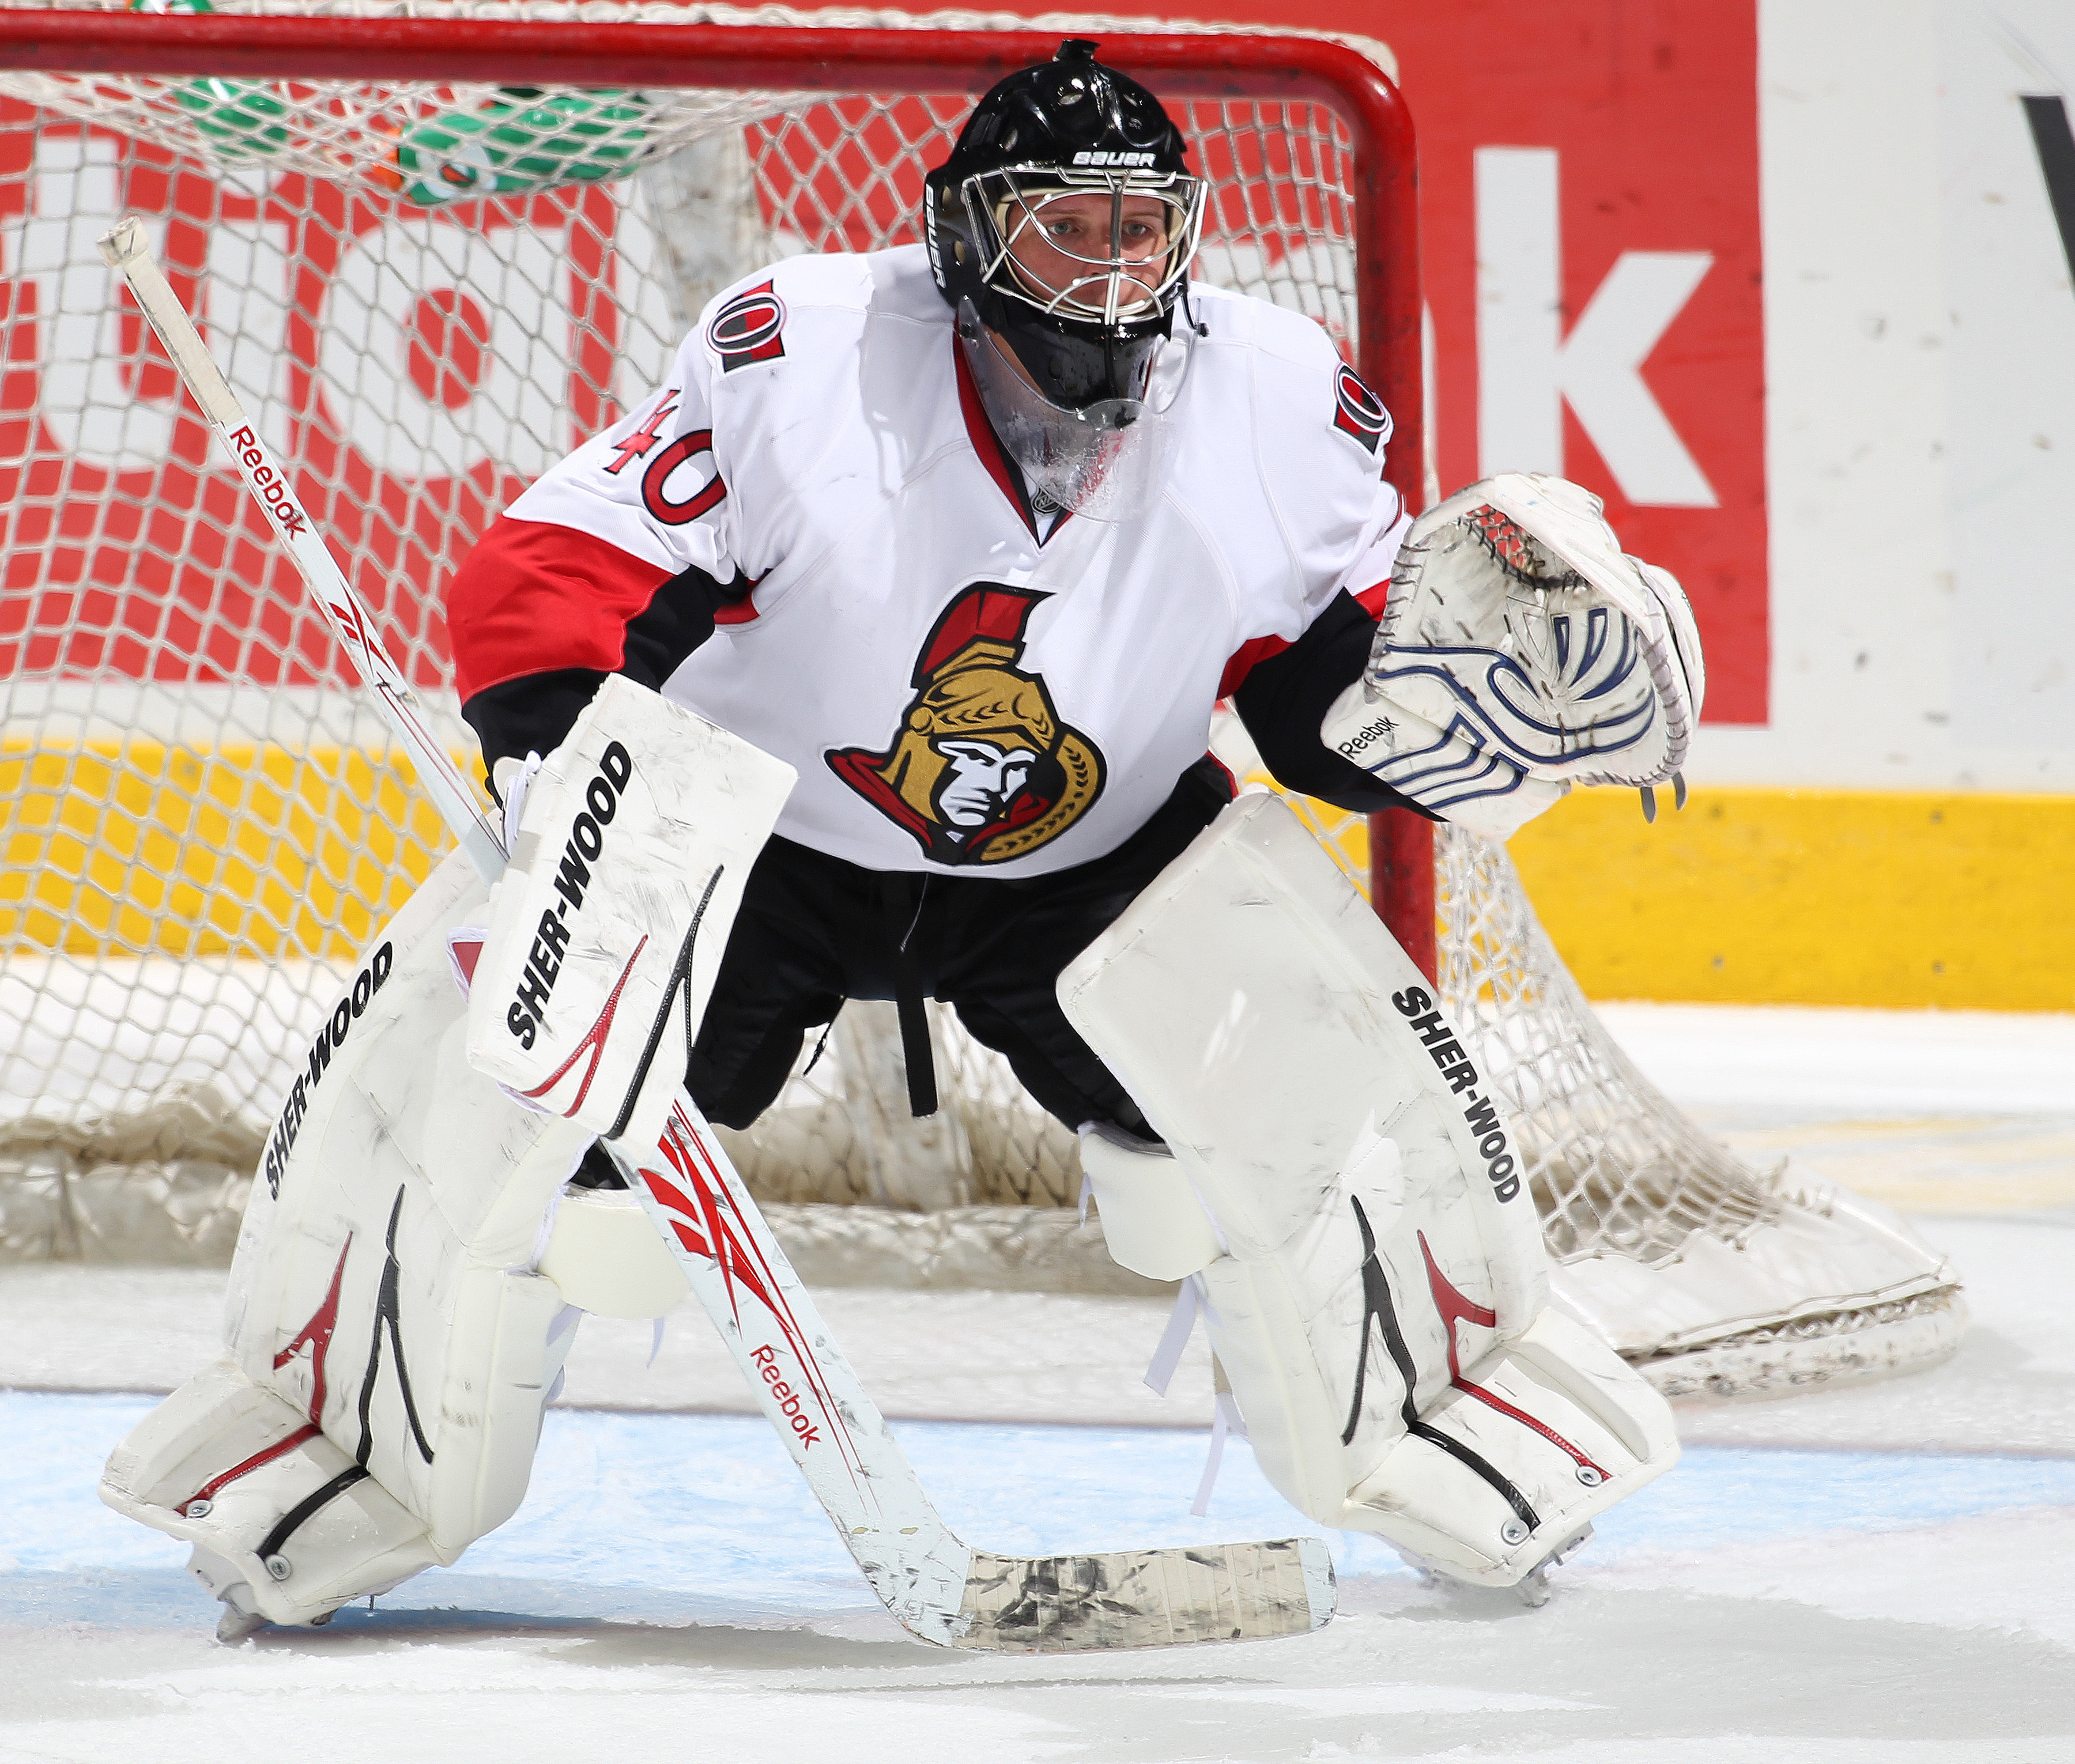 LONDON, CANADA - SEPTEMBER 11:  Robin Lehner #40 of the Ottawa Senators waits for a shot in a game against the Pittsburgh Penguins during the NHL Rookie Tournament on September 11, 2010 at the John Labatt Centre in London,Ontario. The Penguins defeated th